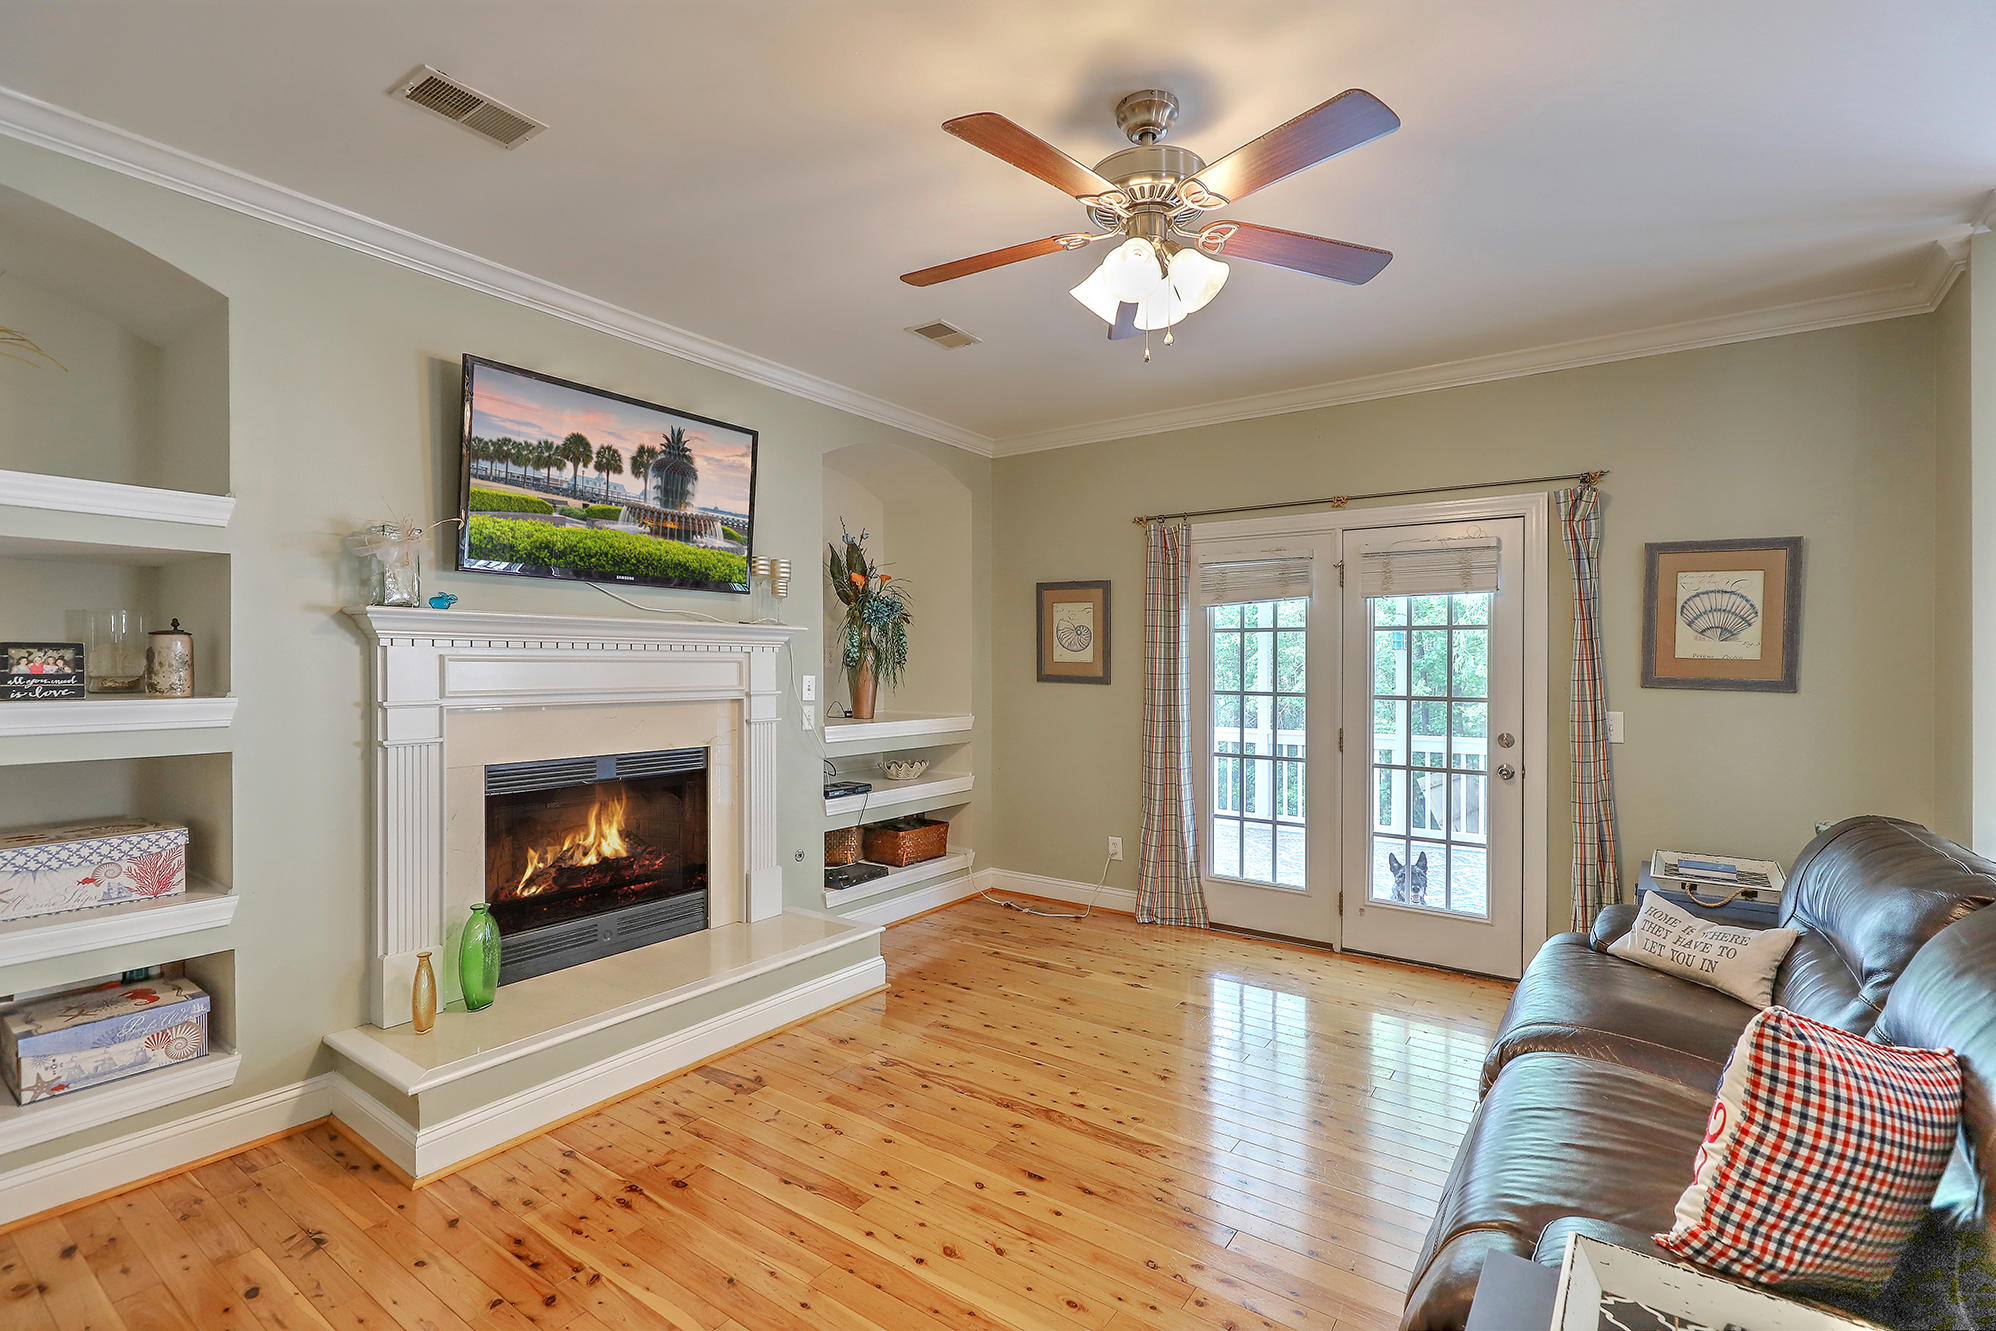 Rivertowne On The Wando Homes For Sale - 2182 Sandy Point Lane, Mount Pleasant, SC - 26